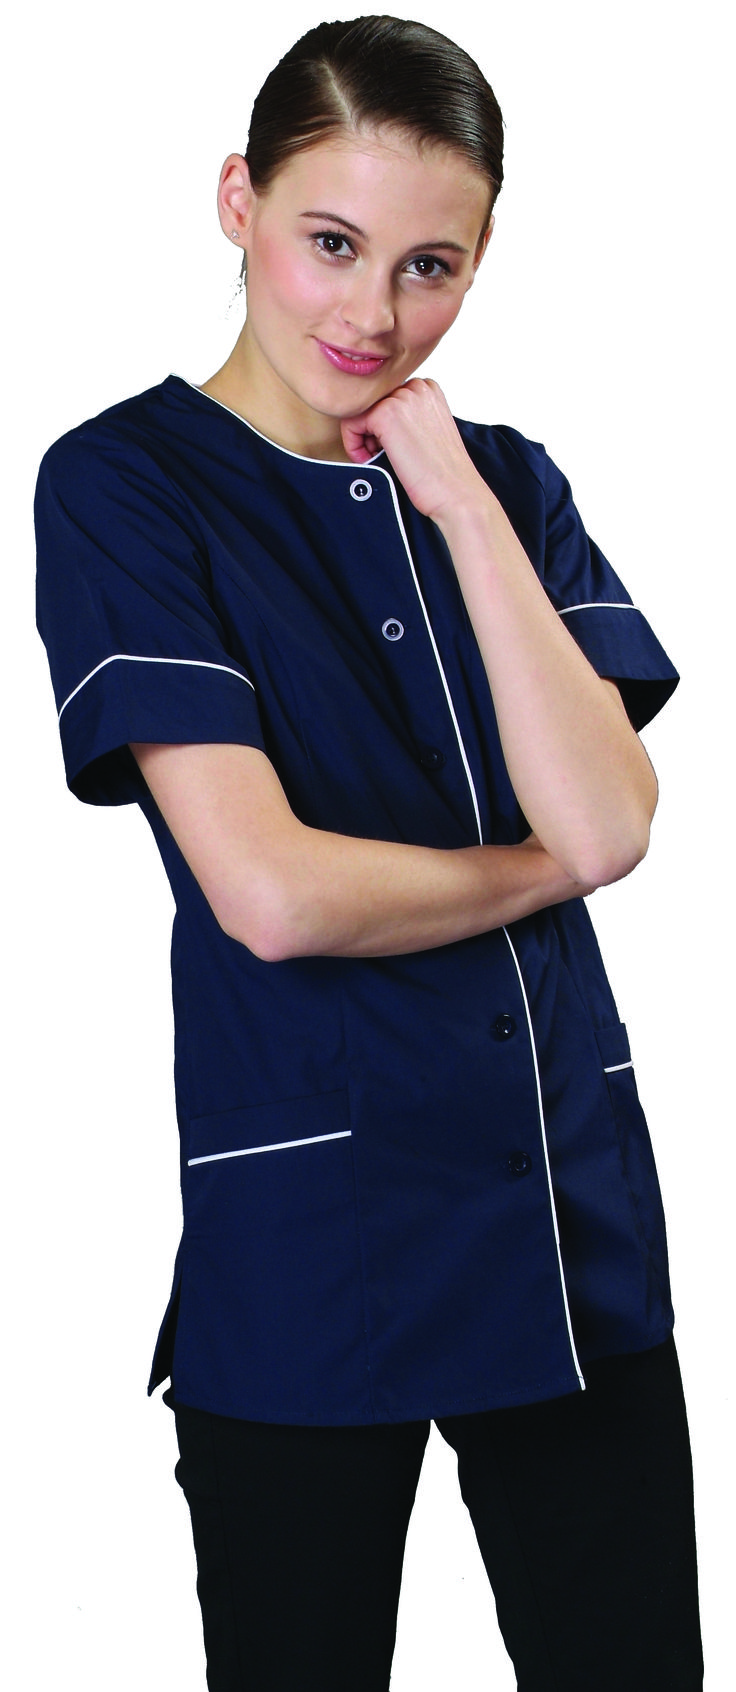 Dublin Uniforms provided top quality healthcare uniforms, including healthcare tunics, nurses uniforms & medical scrubs at Unbeatable prices in Ireland. Now check out more details and updates visit here:   #UniformsIreland #MedicalUniforms #HealthcareUniforms #NursingUniforms